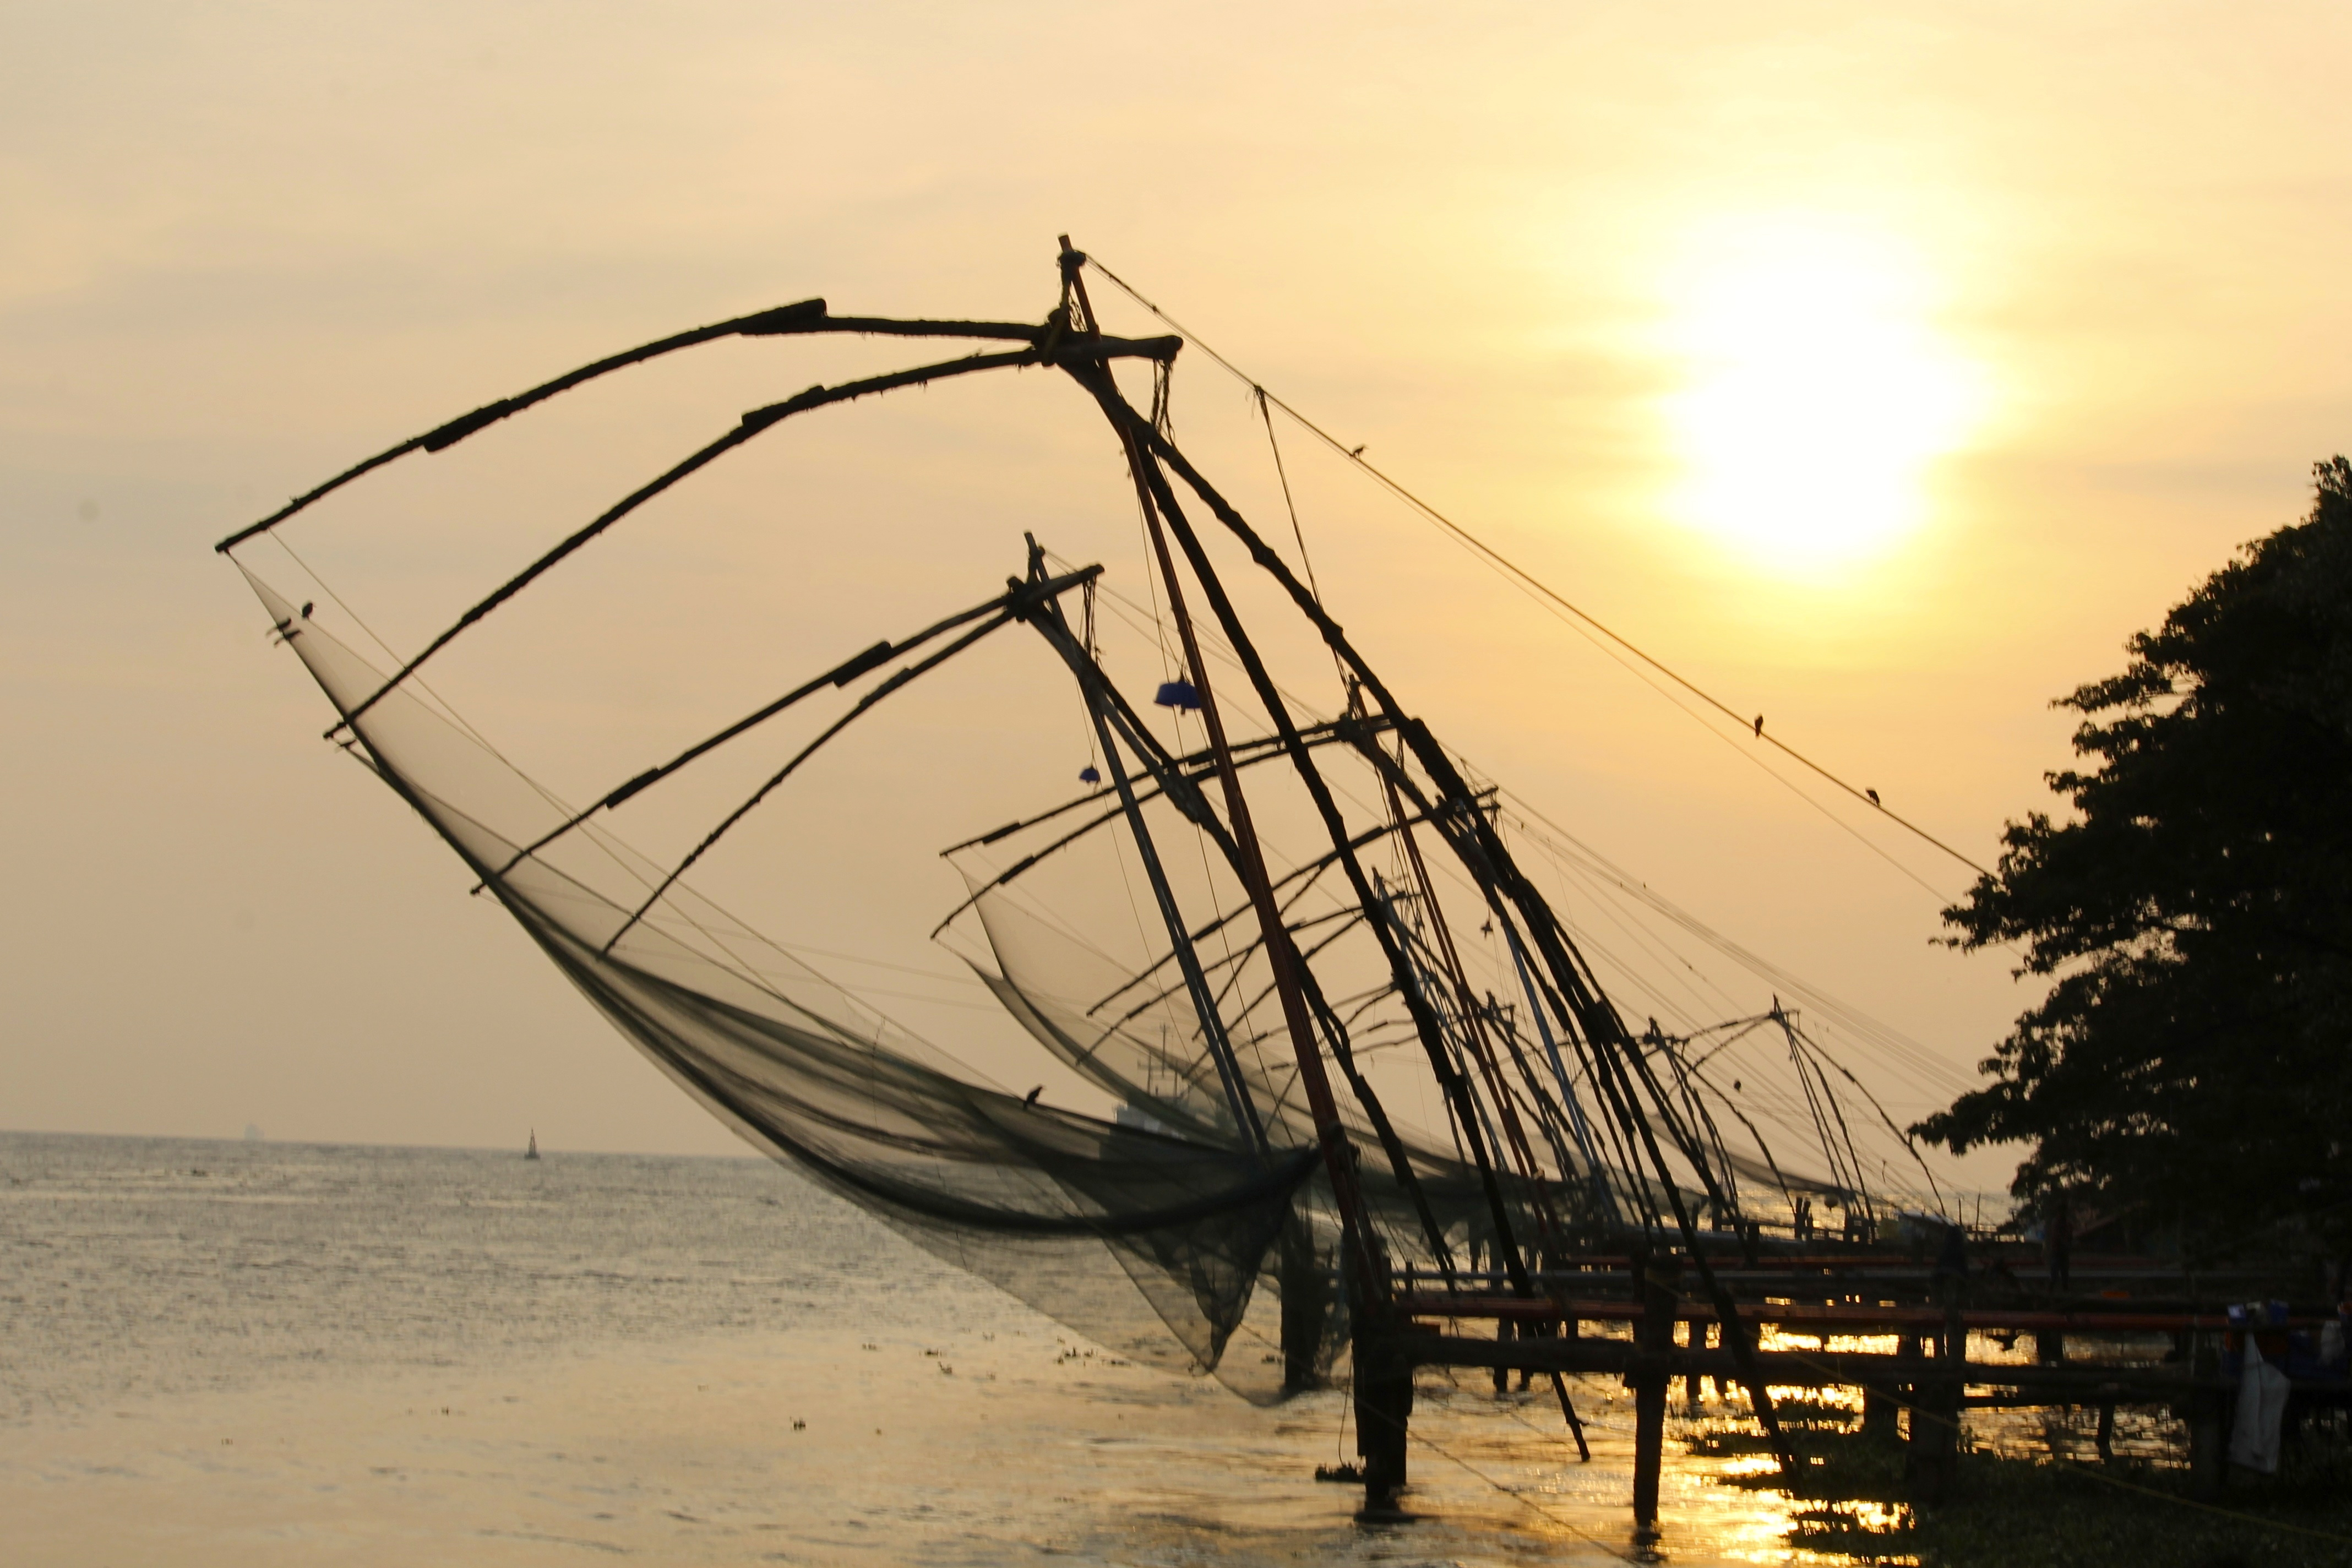 The Chinese dip nets are a common sights along Kerala's coastline © Nisha D'Souza